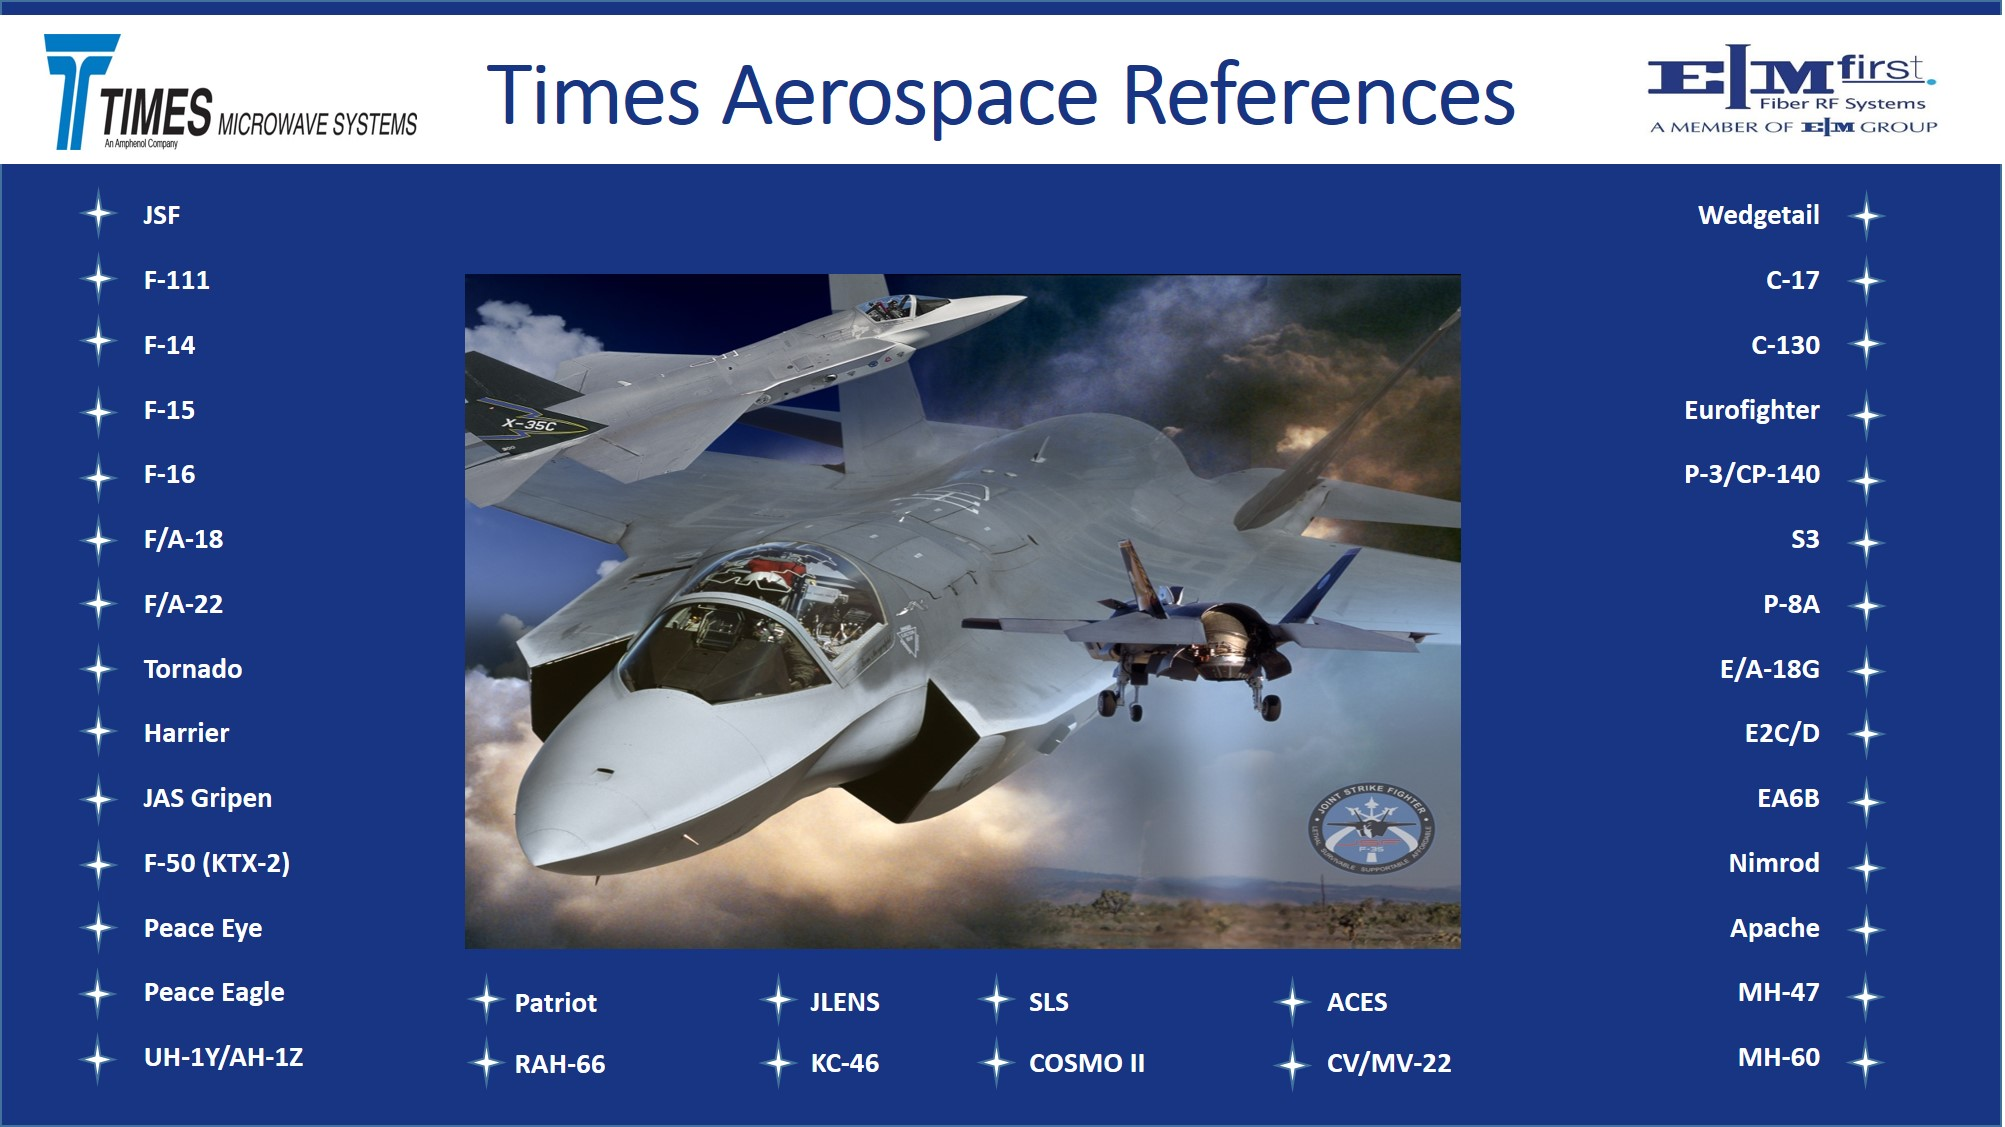 TIME MICROWAVE SYSTEMS REFERENCES